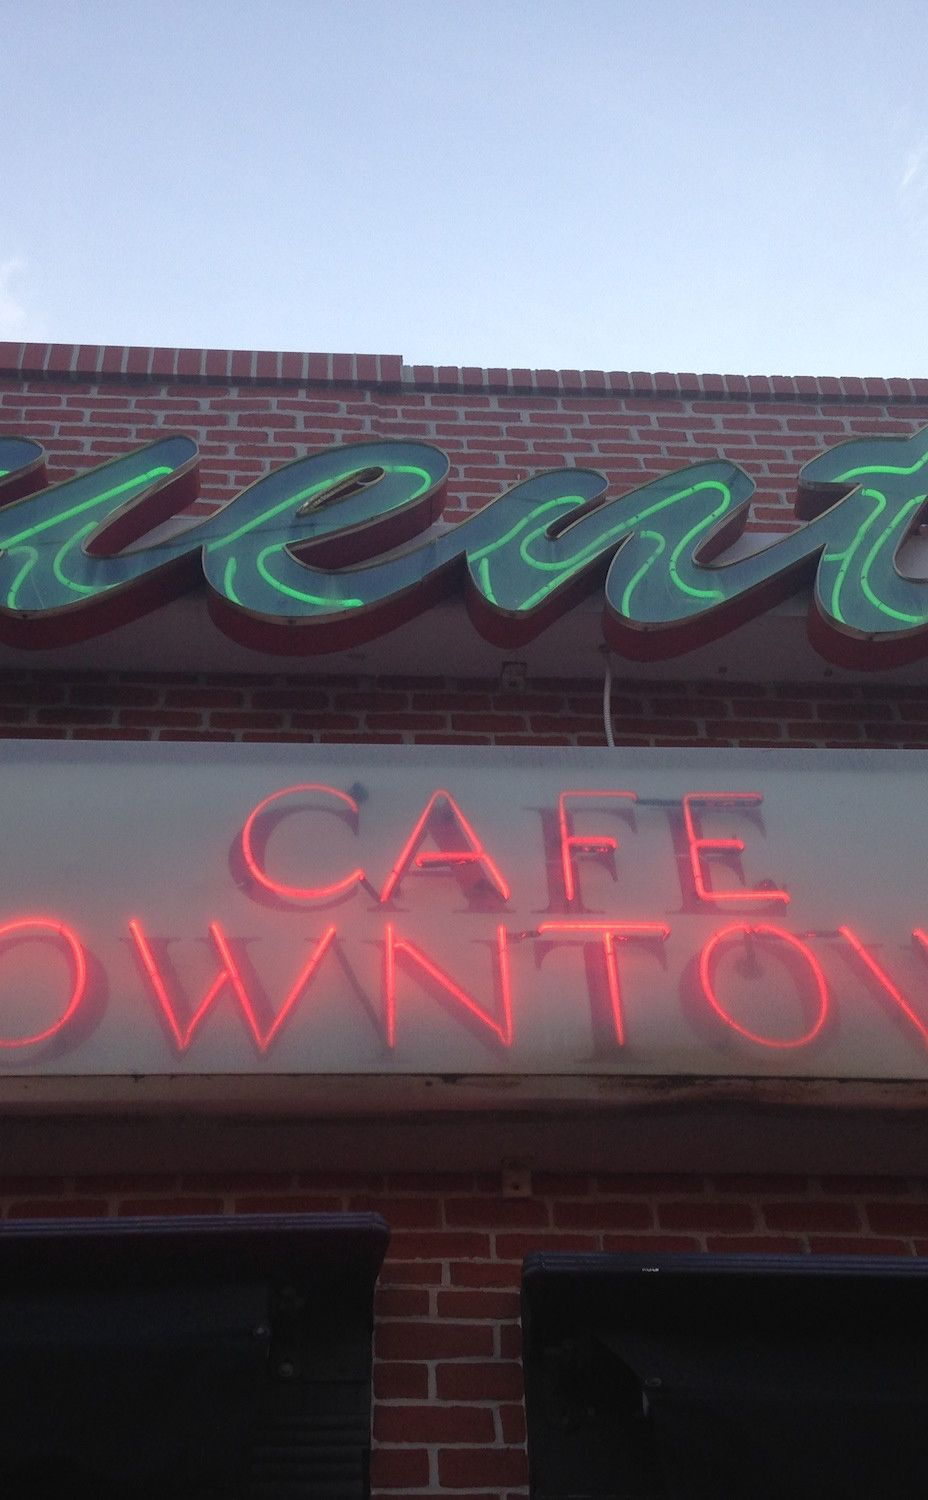 Fuentes Cafe Downtown American food restaurants, Road